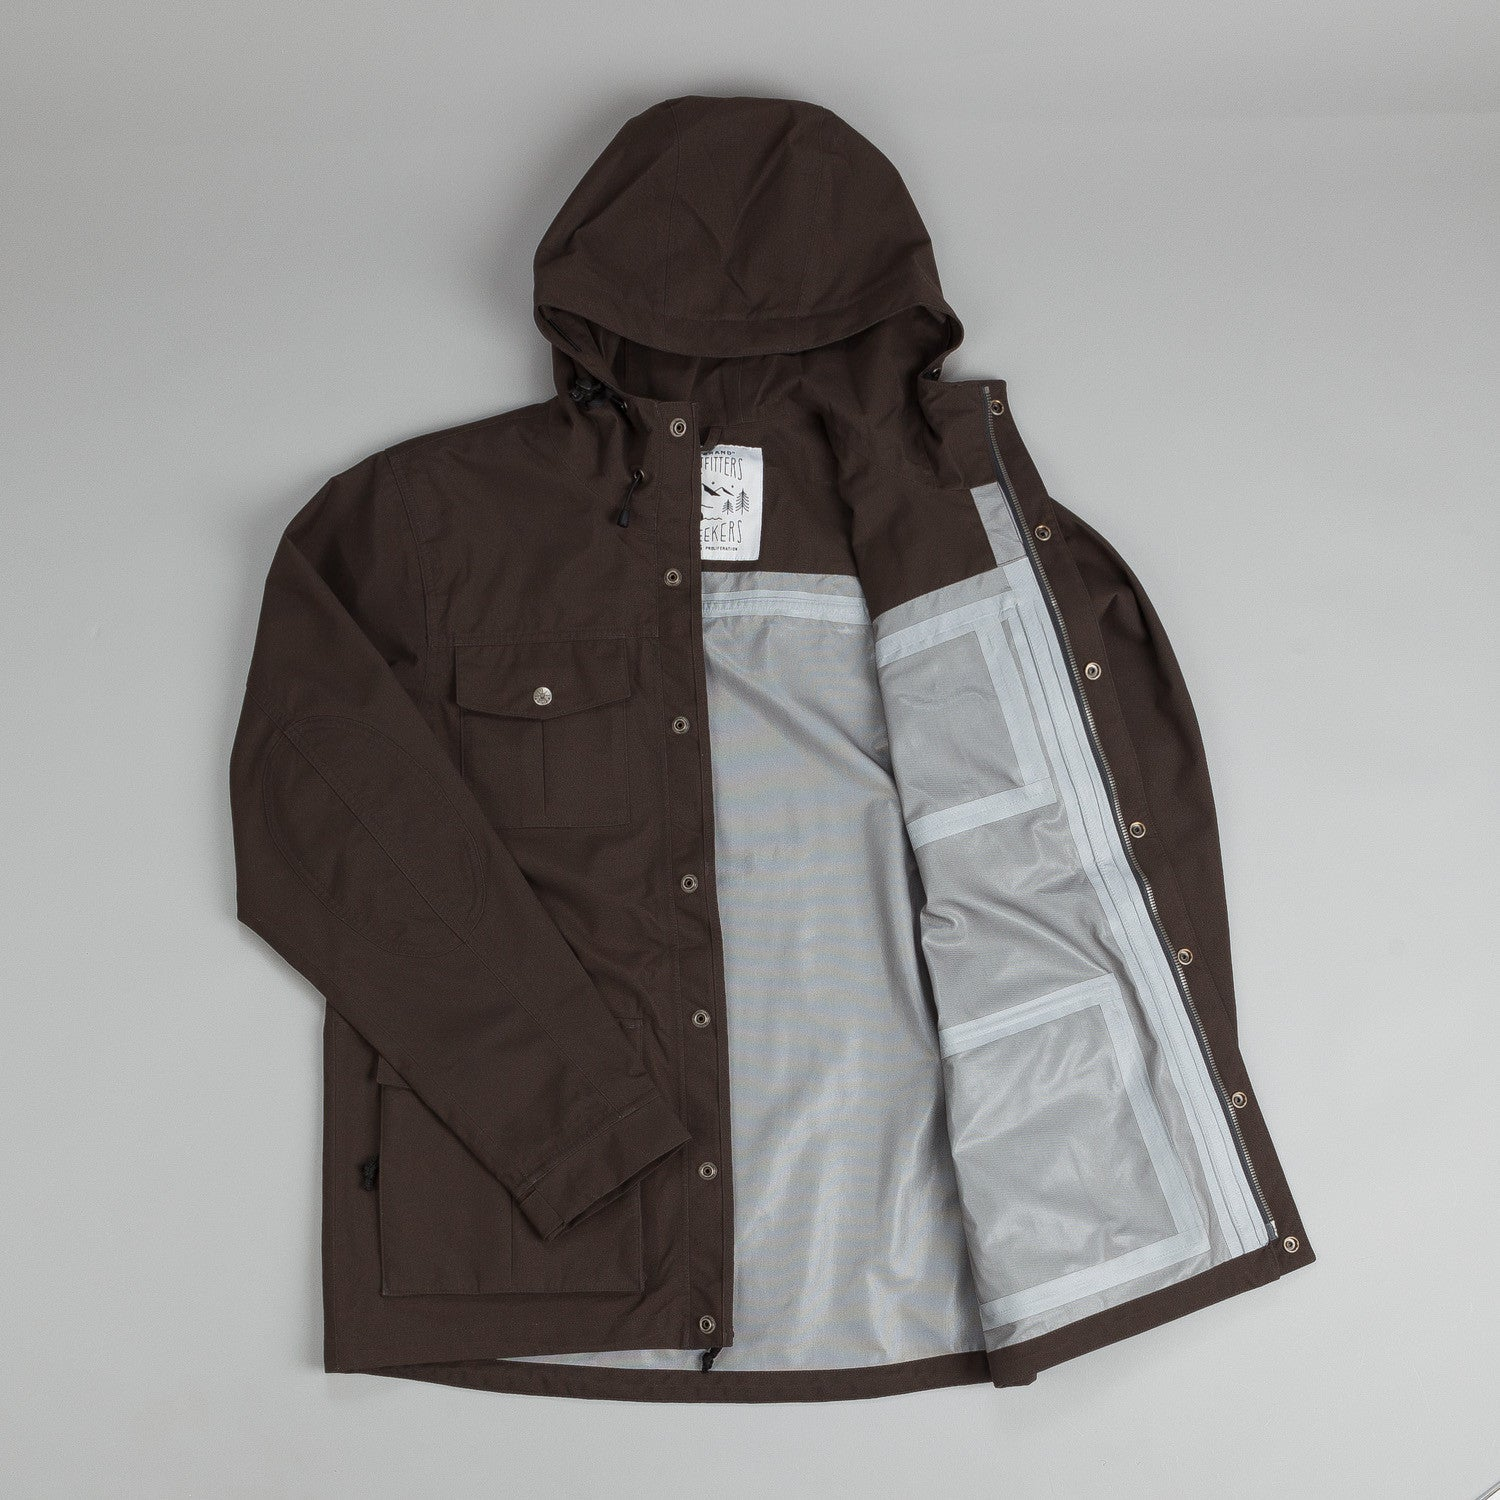 Poler 3L Surveyor Jacket Black